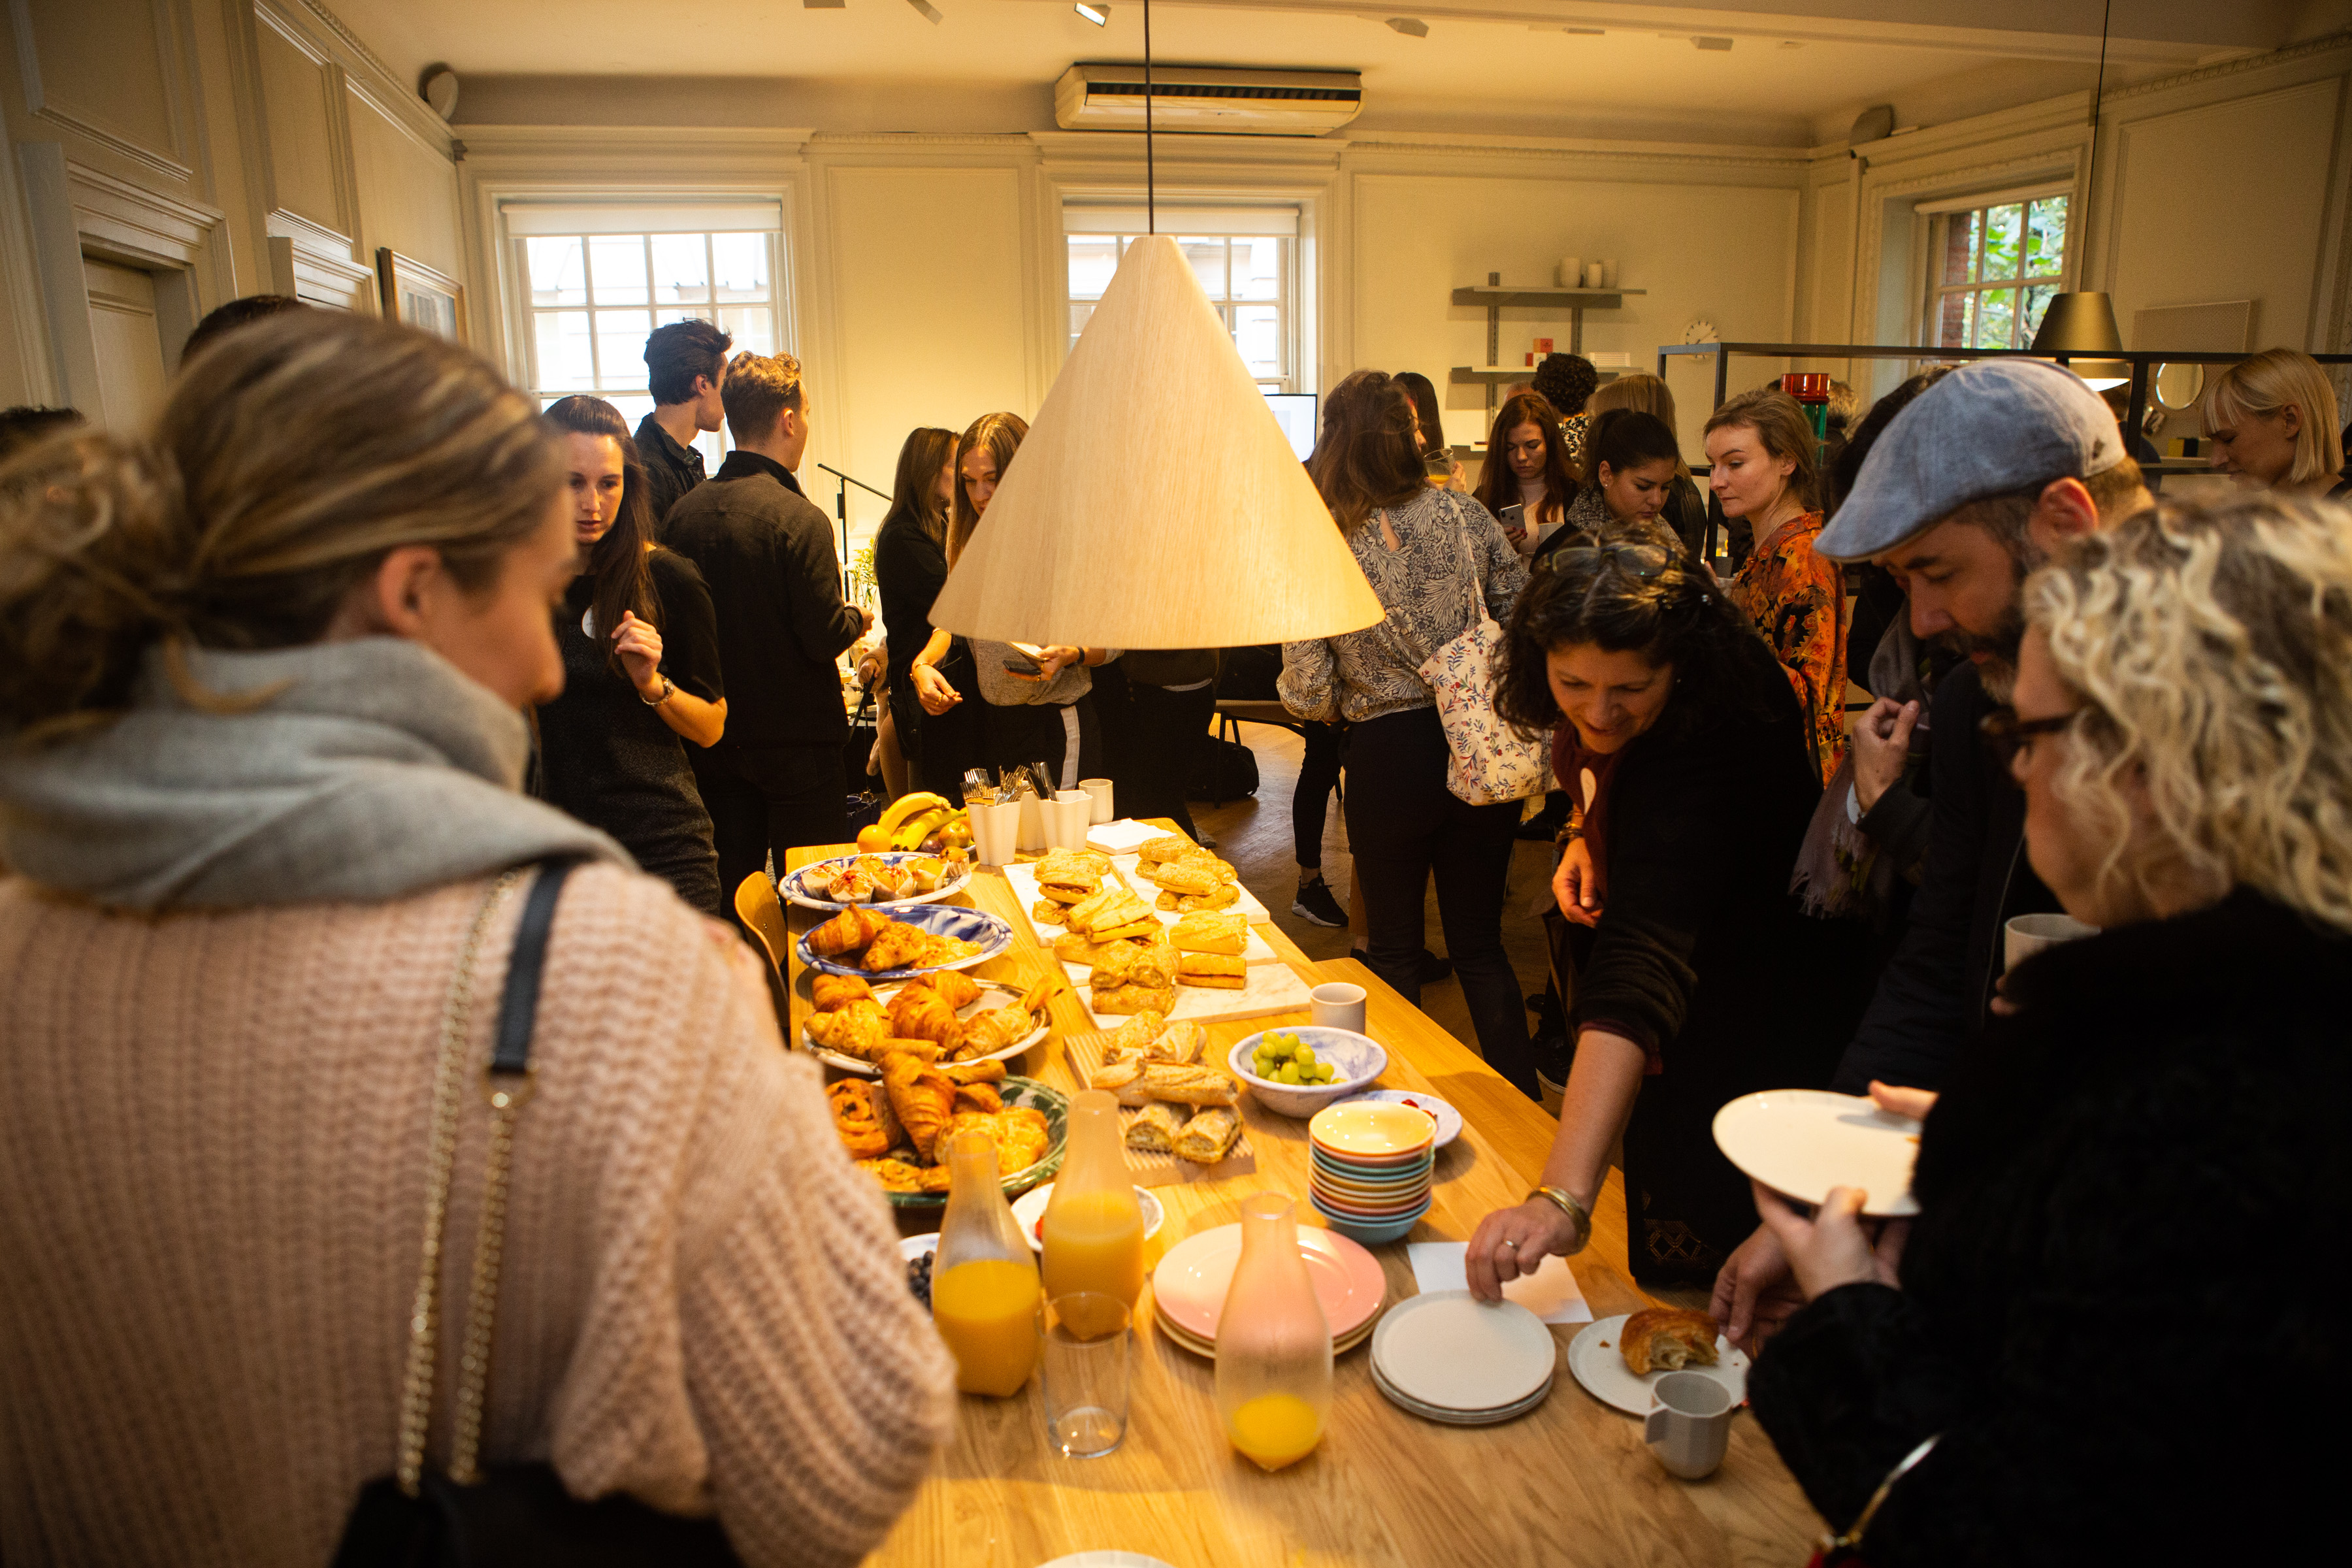 Clippings interior design event in London - Clippings Breakfast Insights with Hay